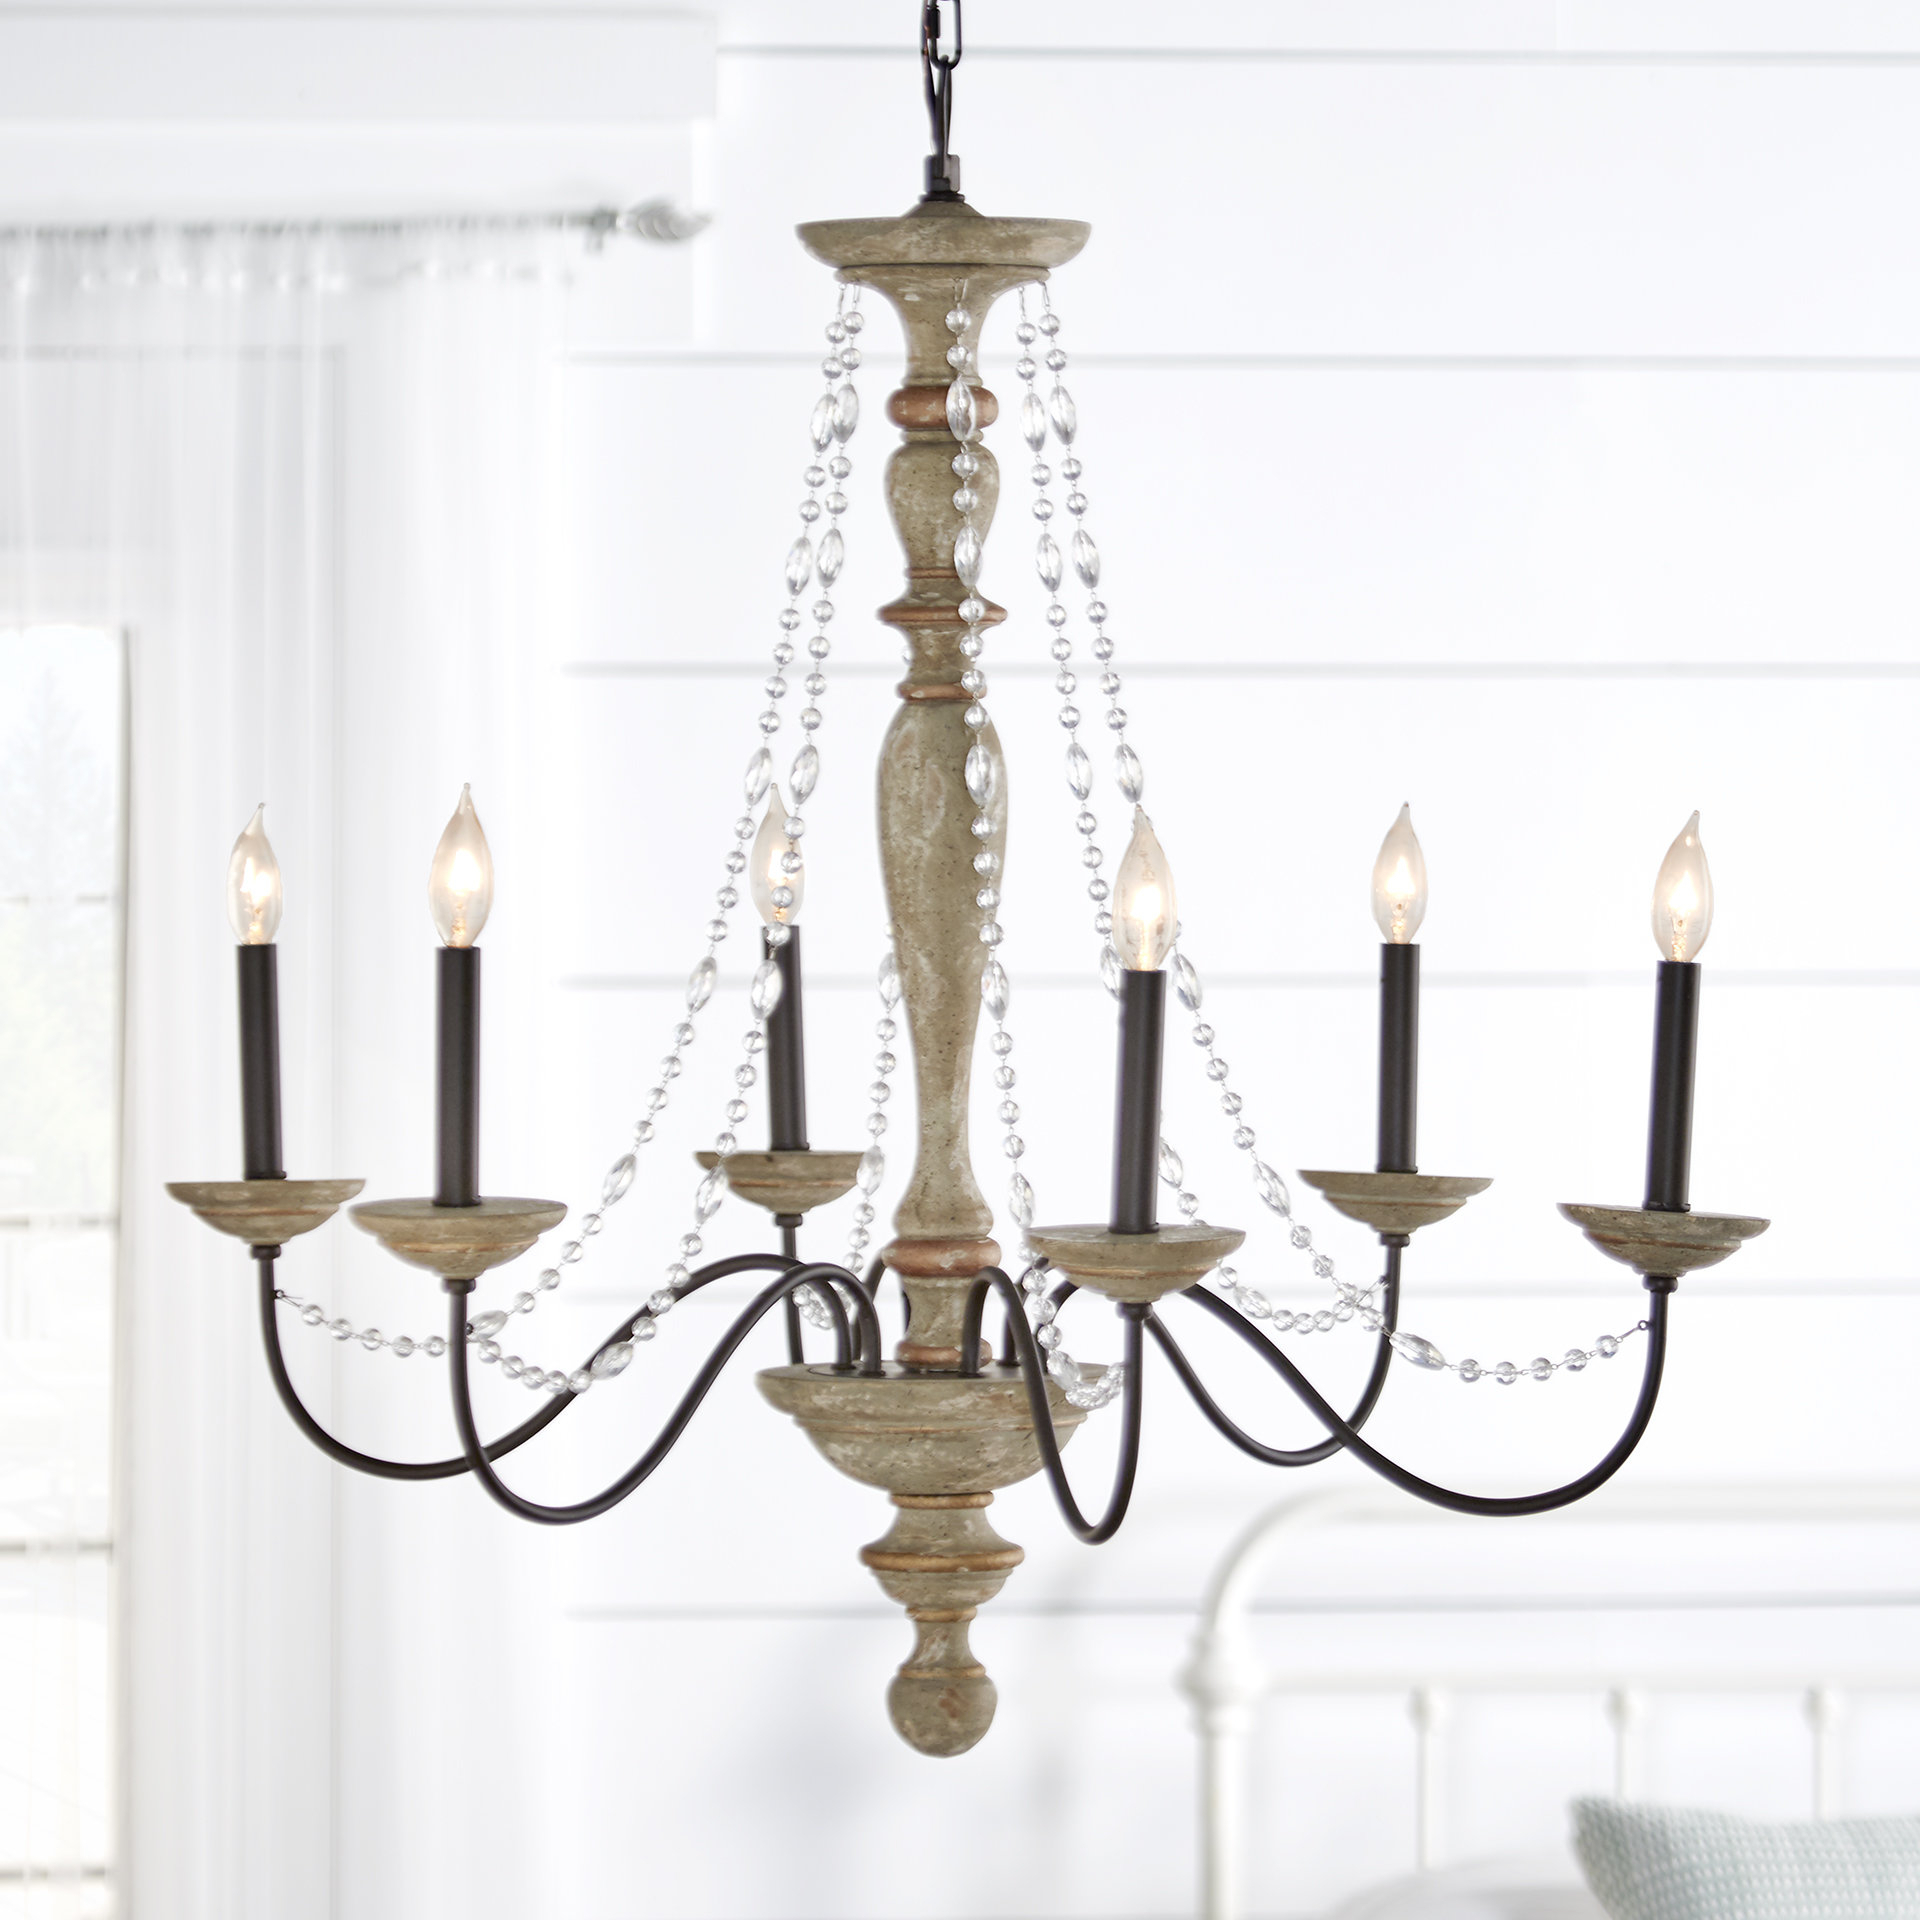 Widely Used Bennington 6 Light Candle Style Chandeliers Regarding Three Posts Brennon 6 Light Candle Style Chandelier (View 19 of 20)